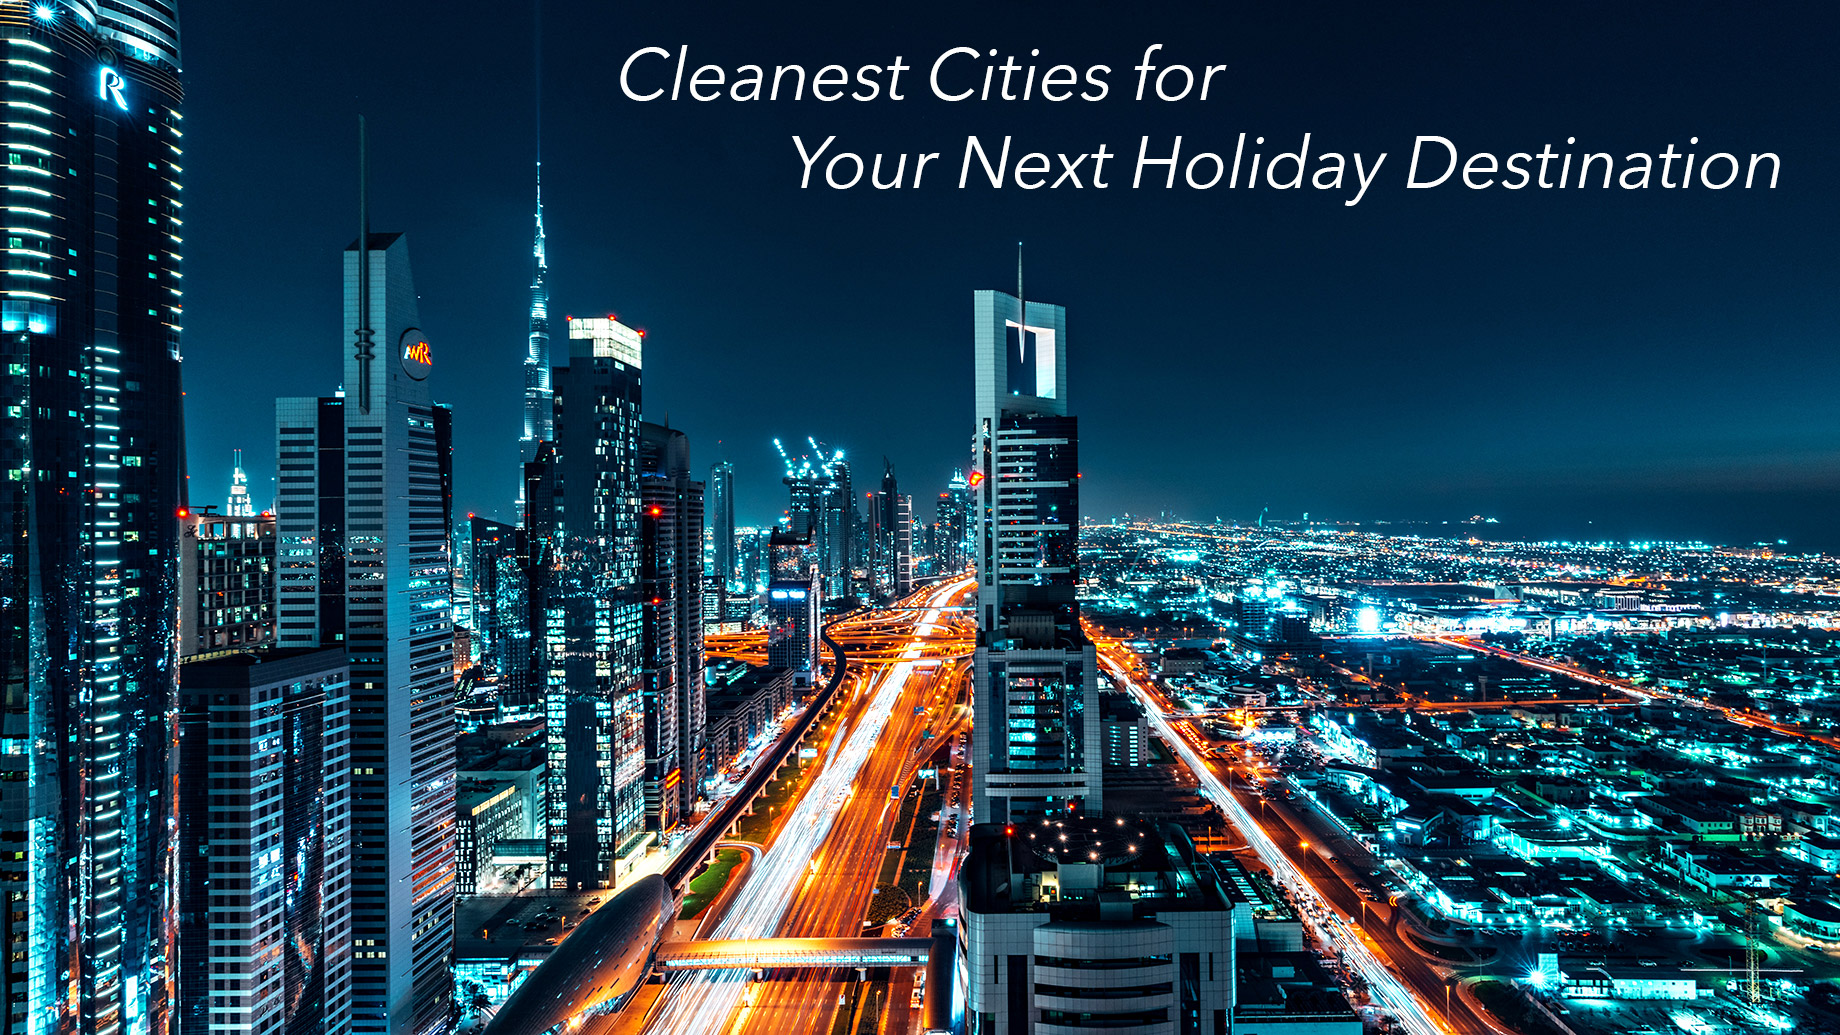 Cleanest Cities for Your Next Holiday Destination